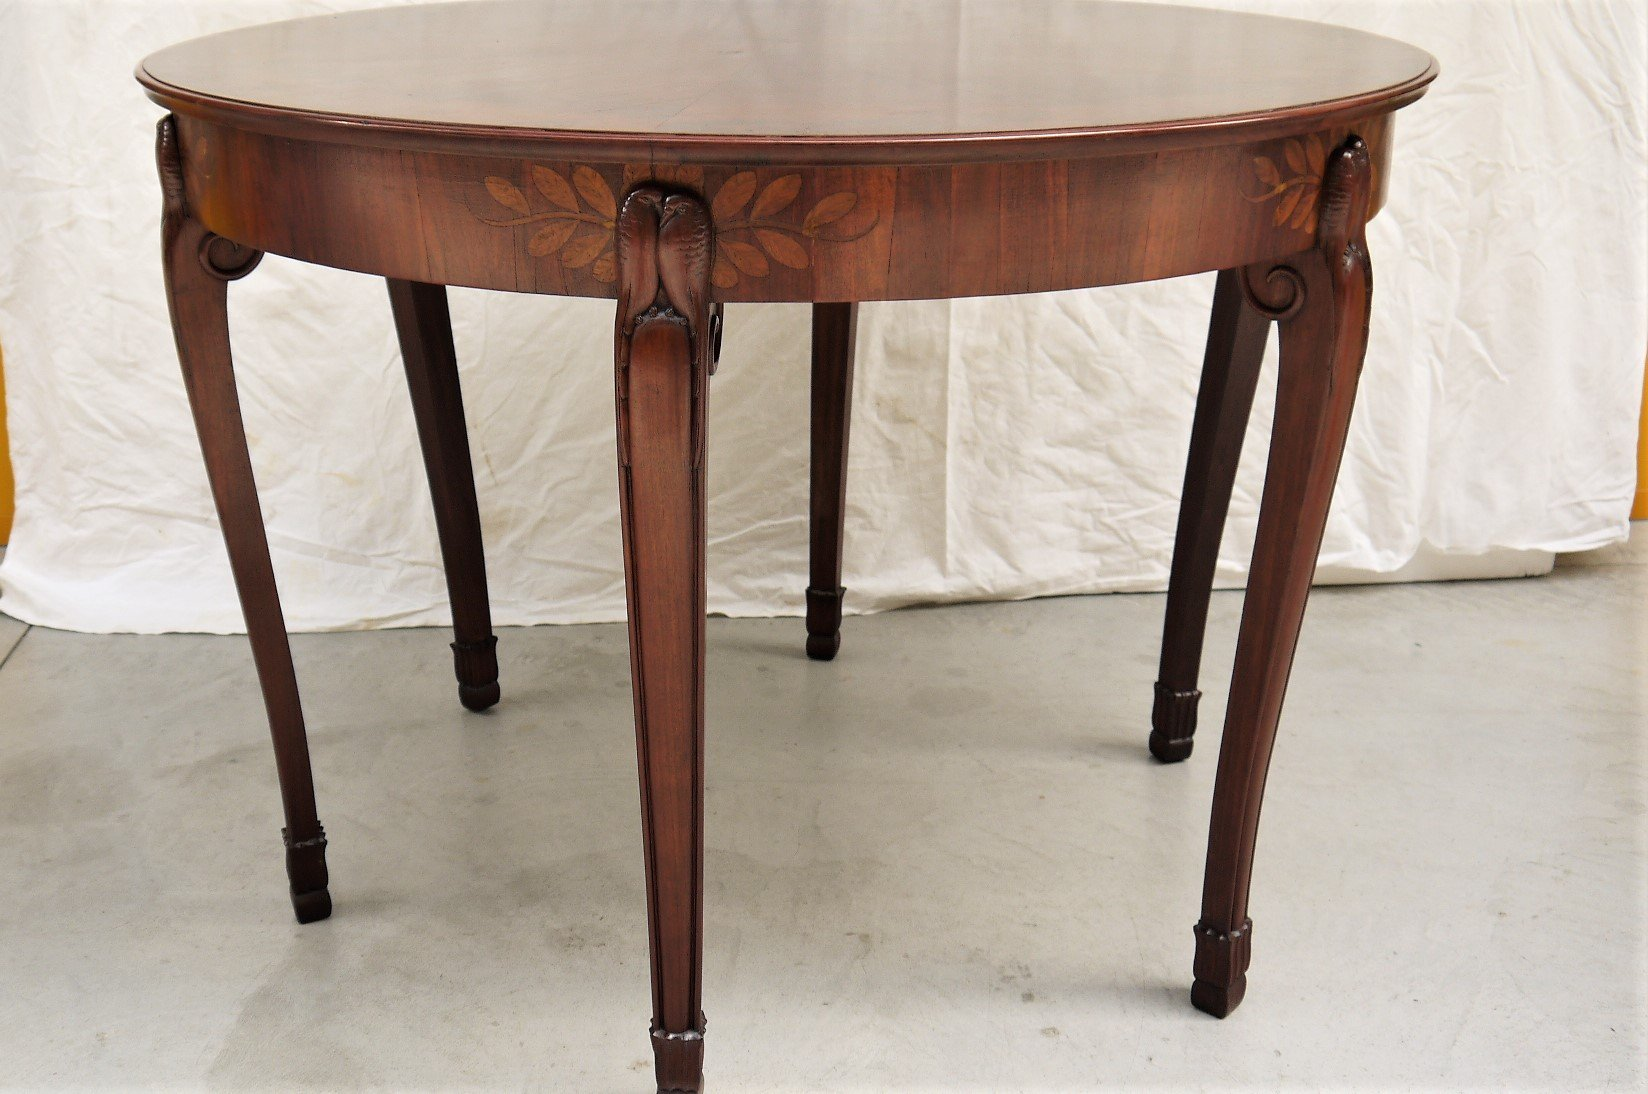 Vintage French Dining Table With Parrot Ornaments